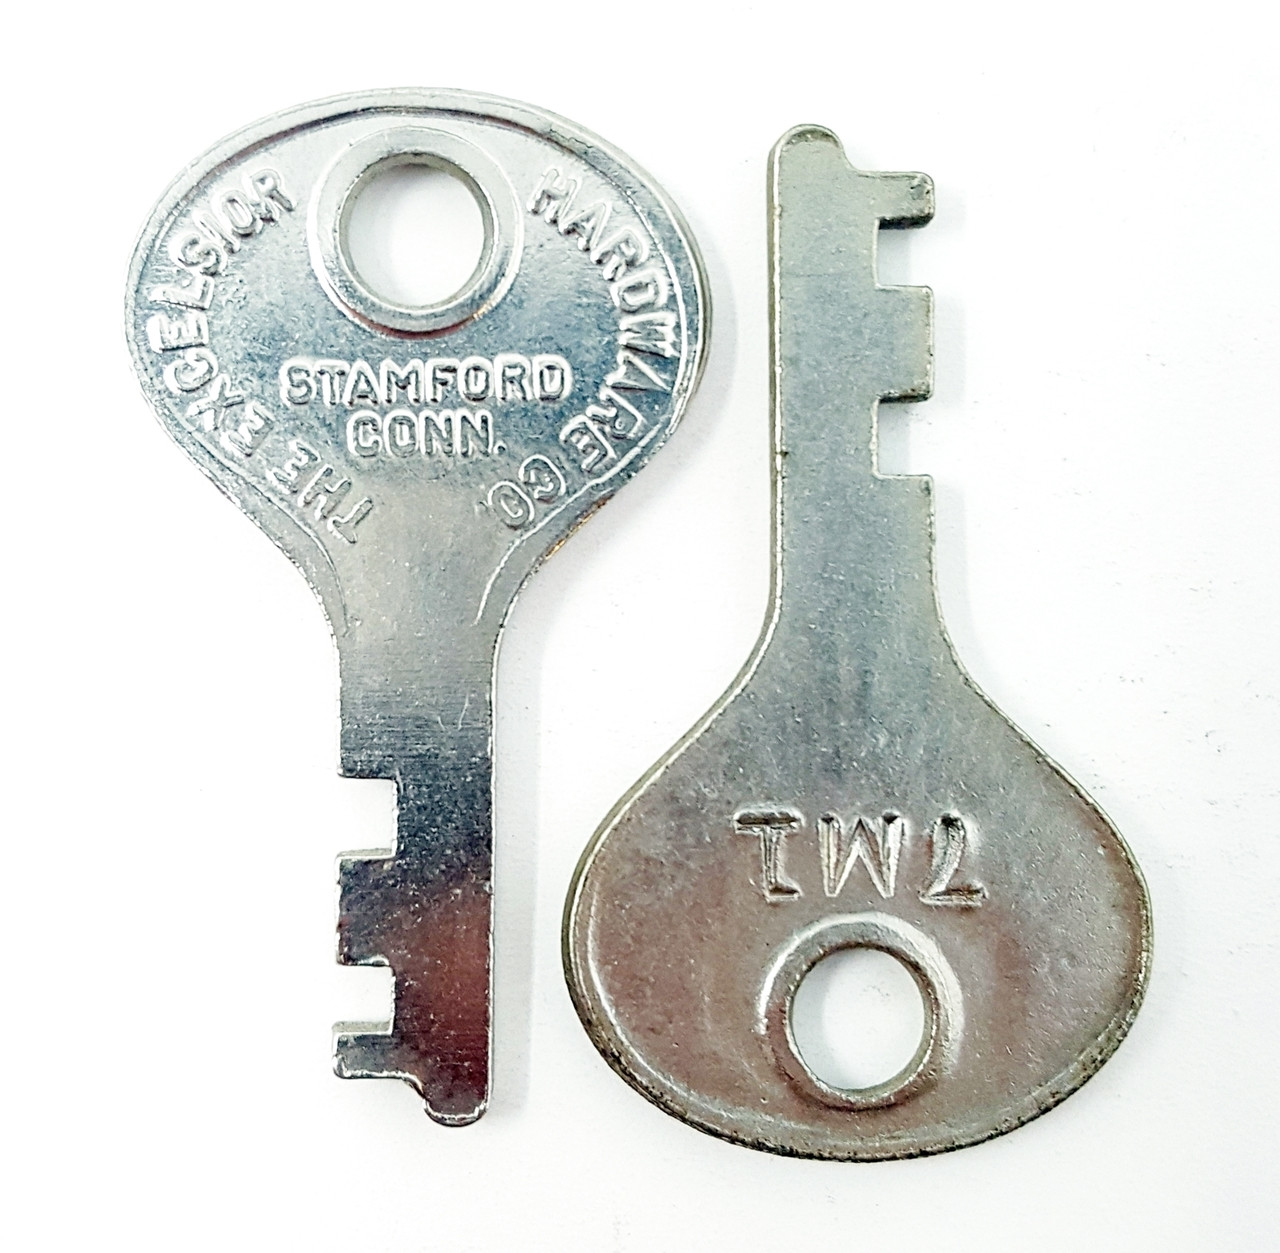 Excelsior Number 7M1 Luggage Key One Pair